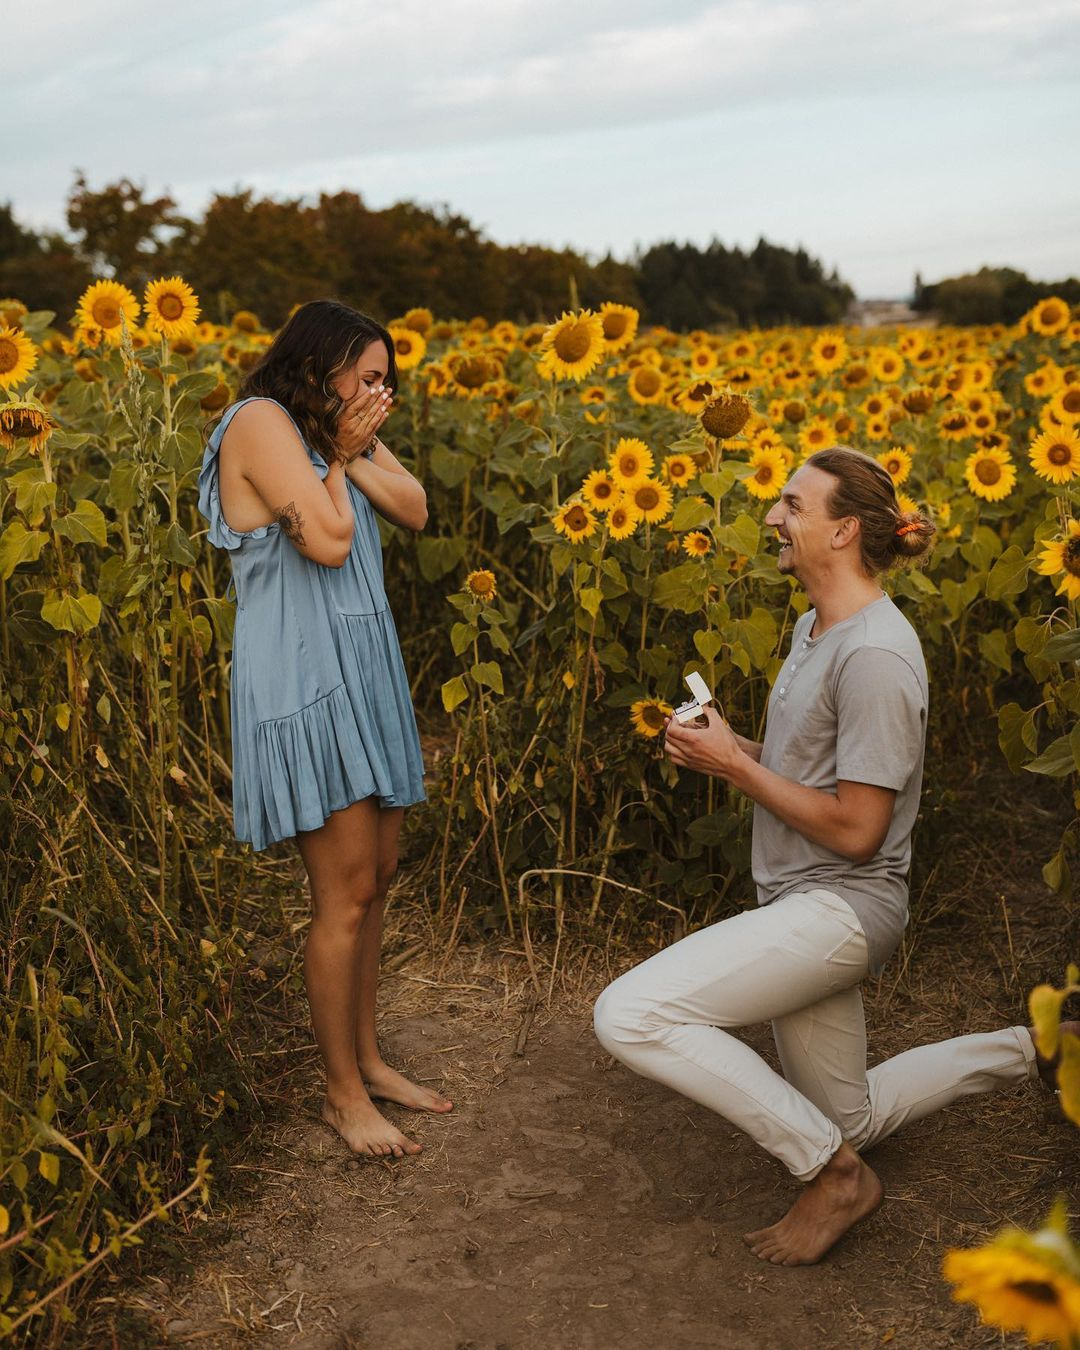 proposal ideas barefoot in a field of sunflowers